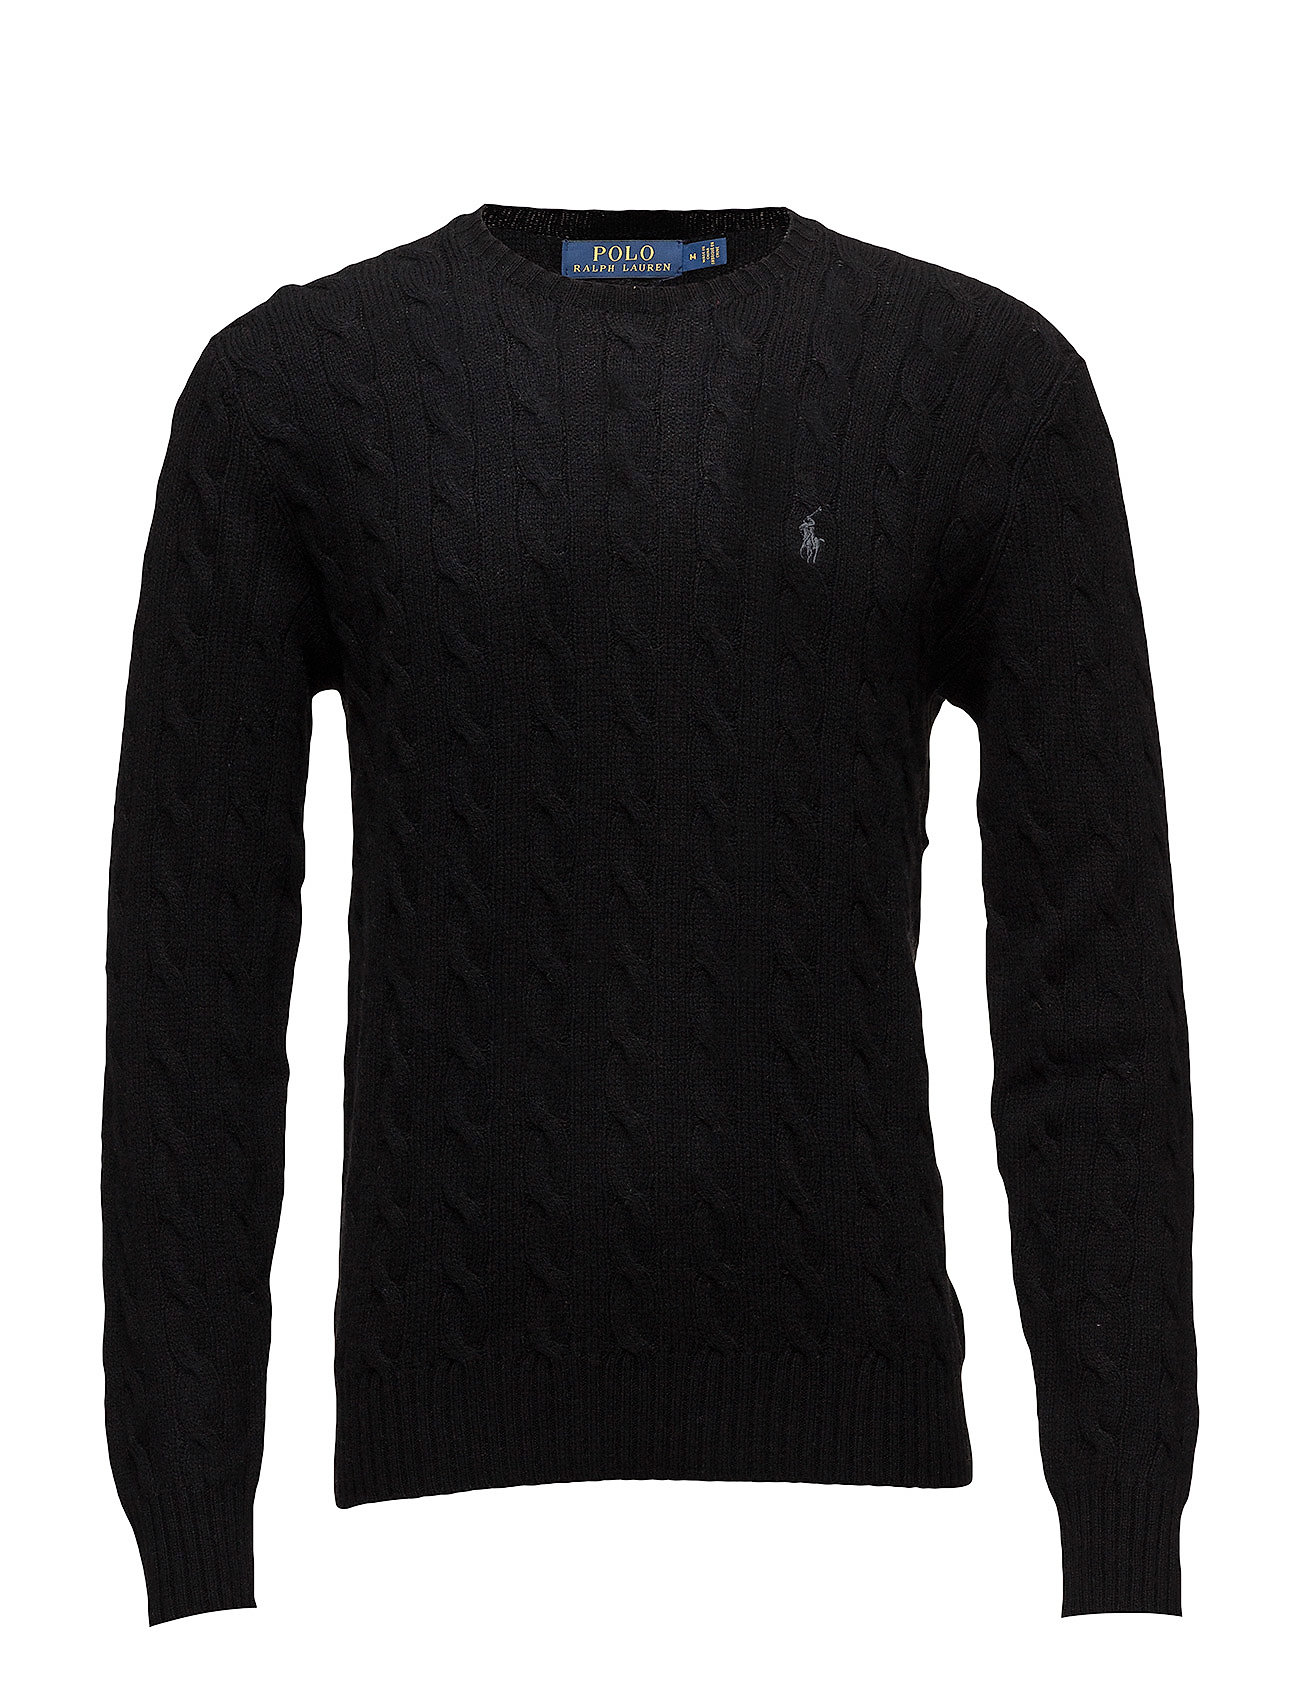 Polo Ralph Lauren LS CABLE CN-LONG SLEEVE-SWEATER - POLO BLACK